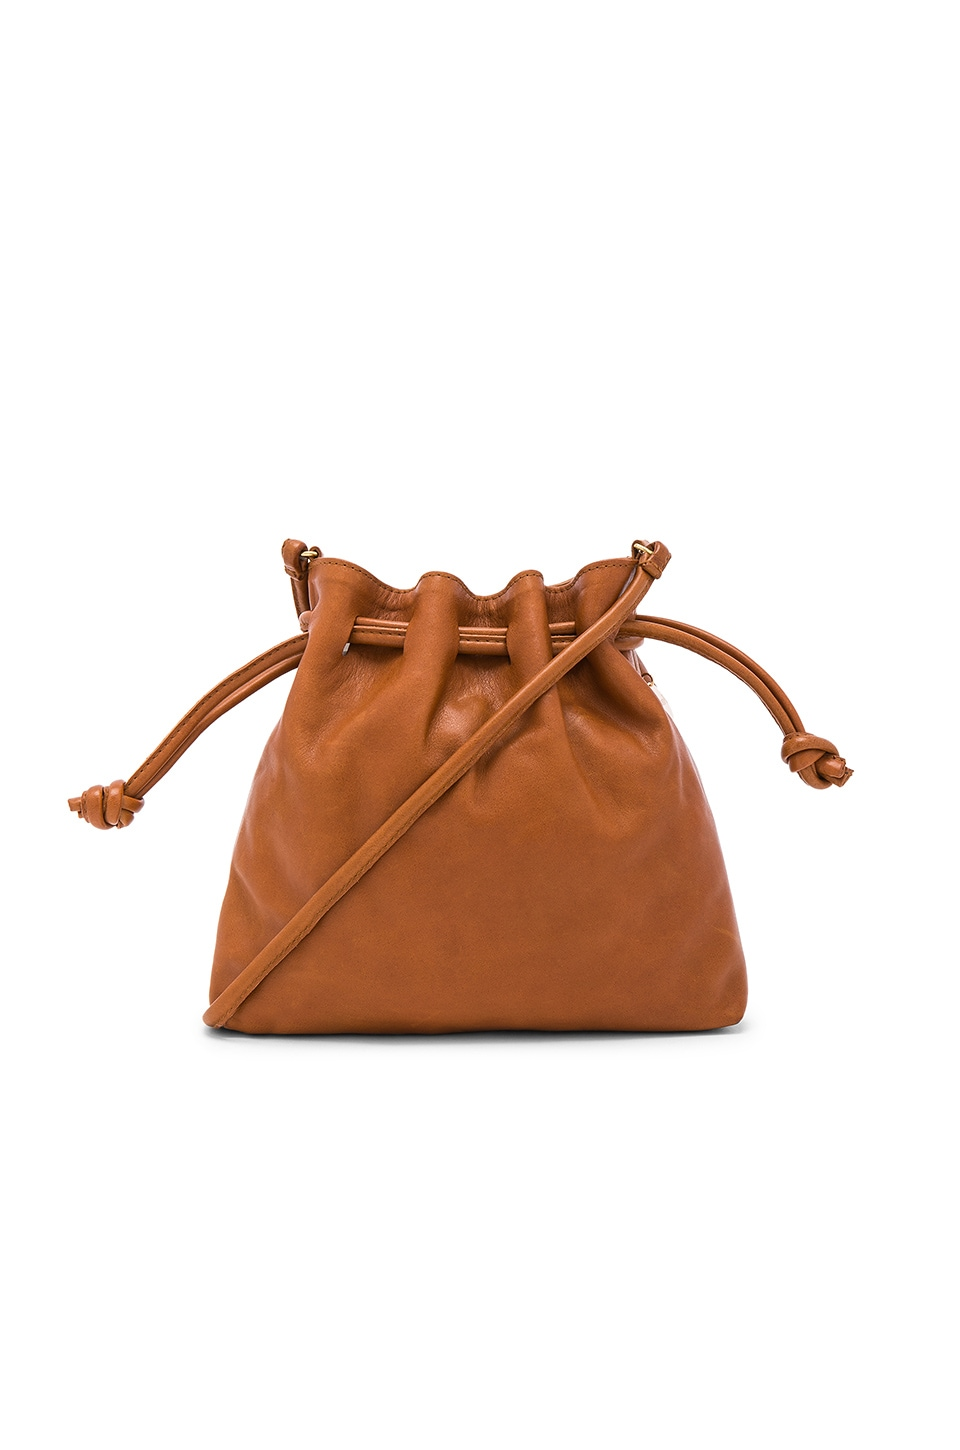 Clare V. Henri Maison Petit Bag in Tan